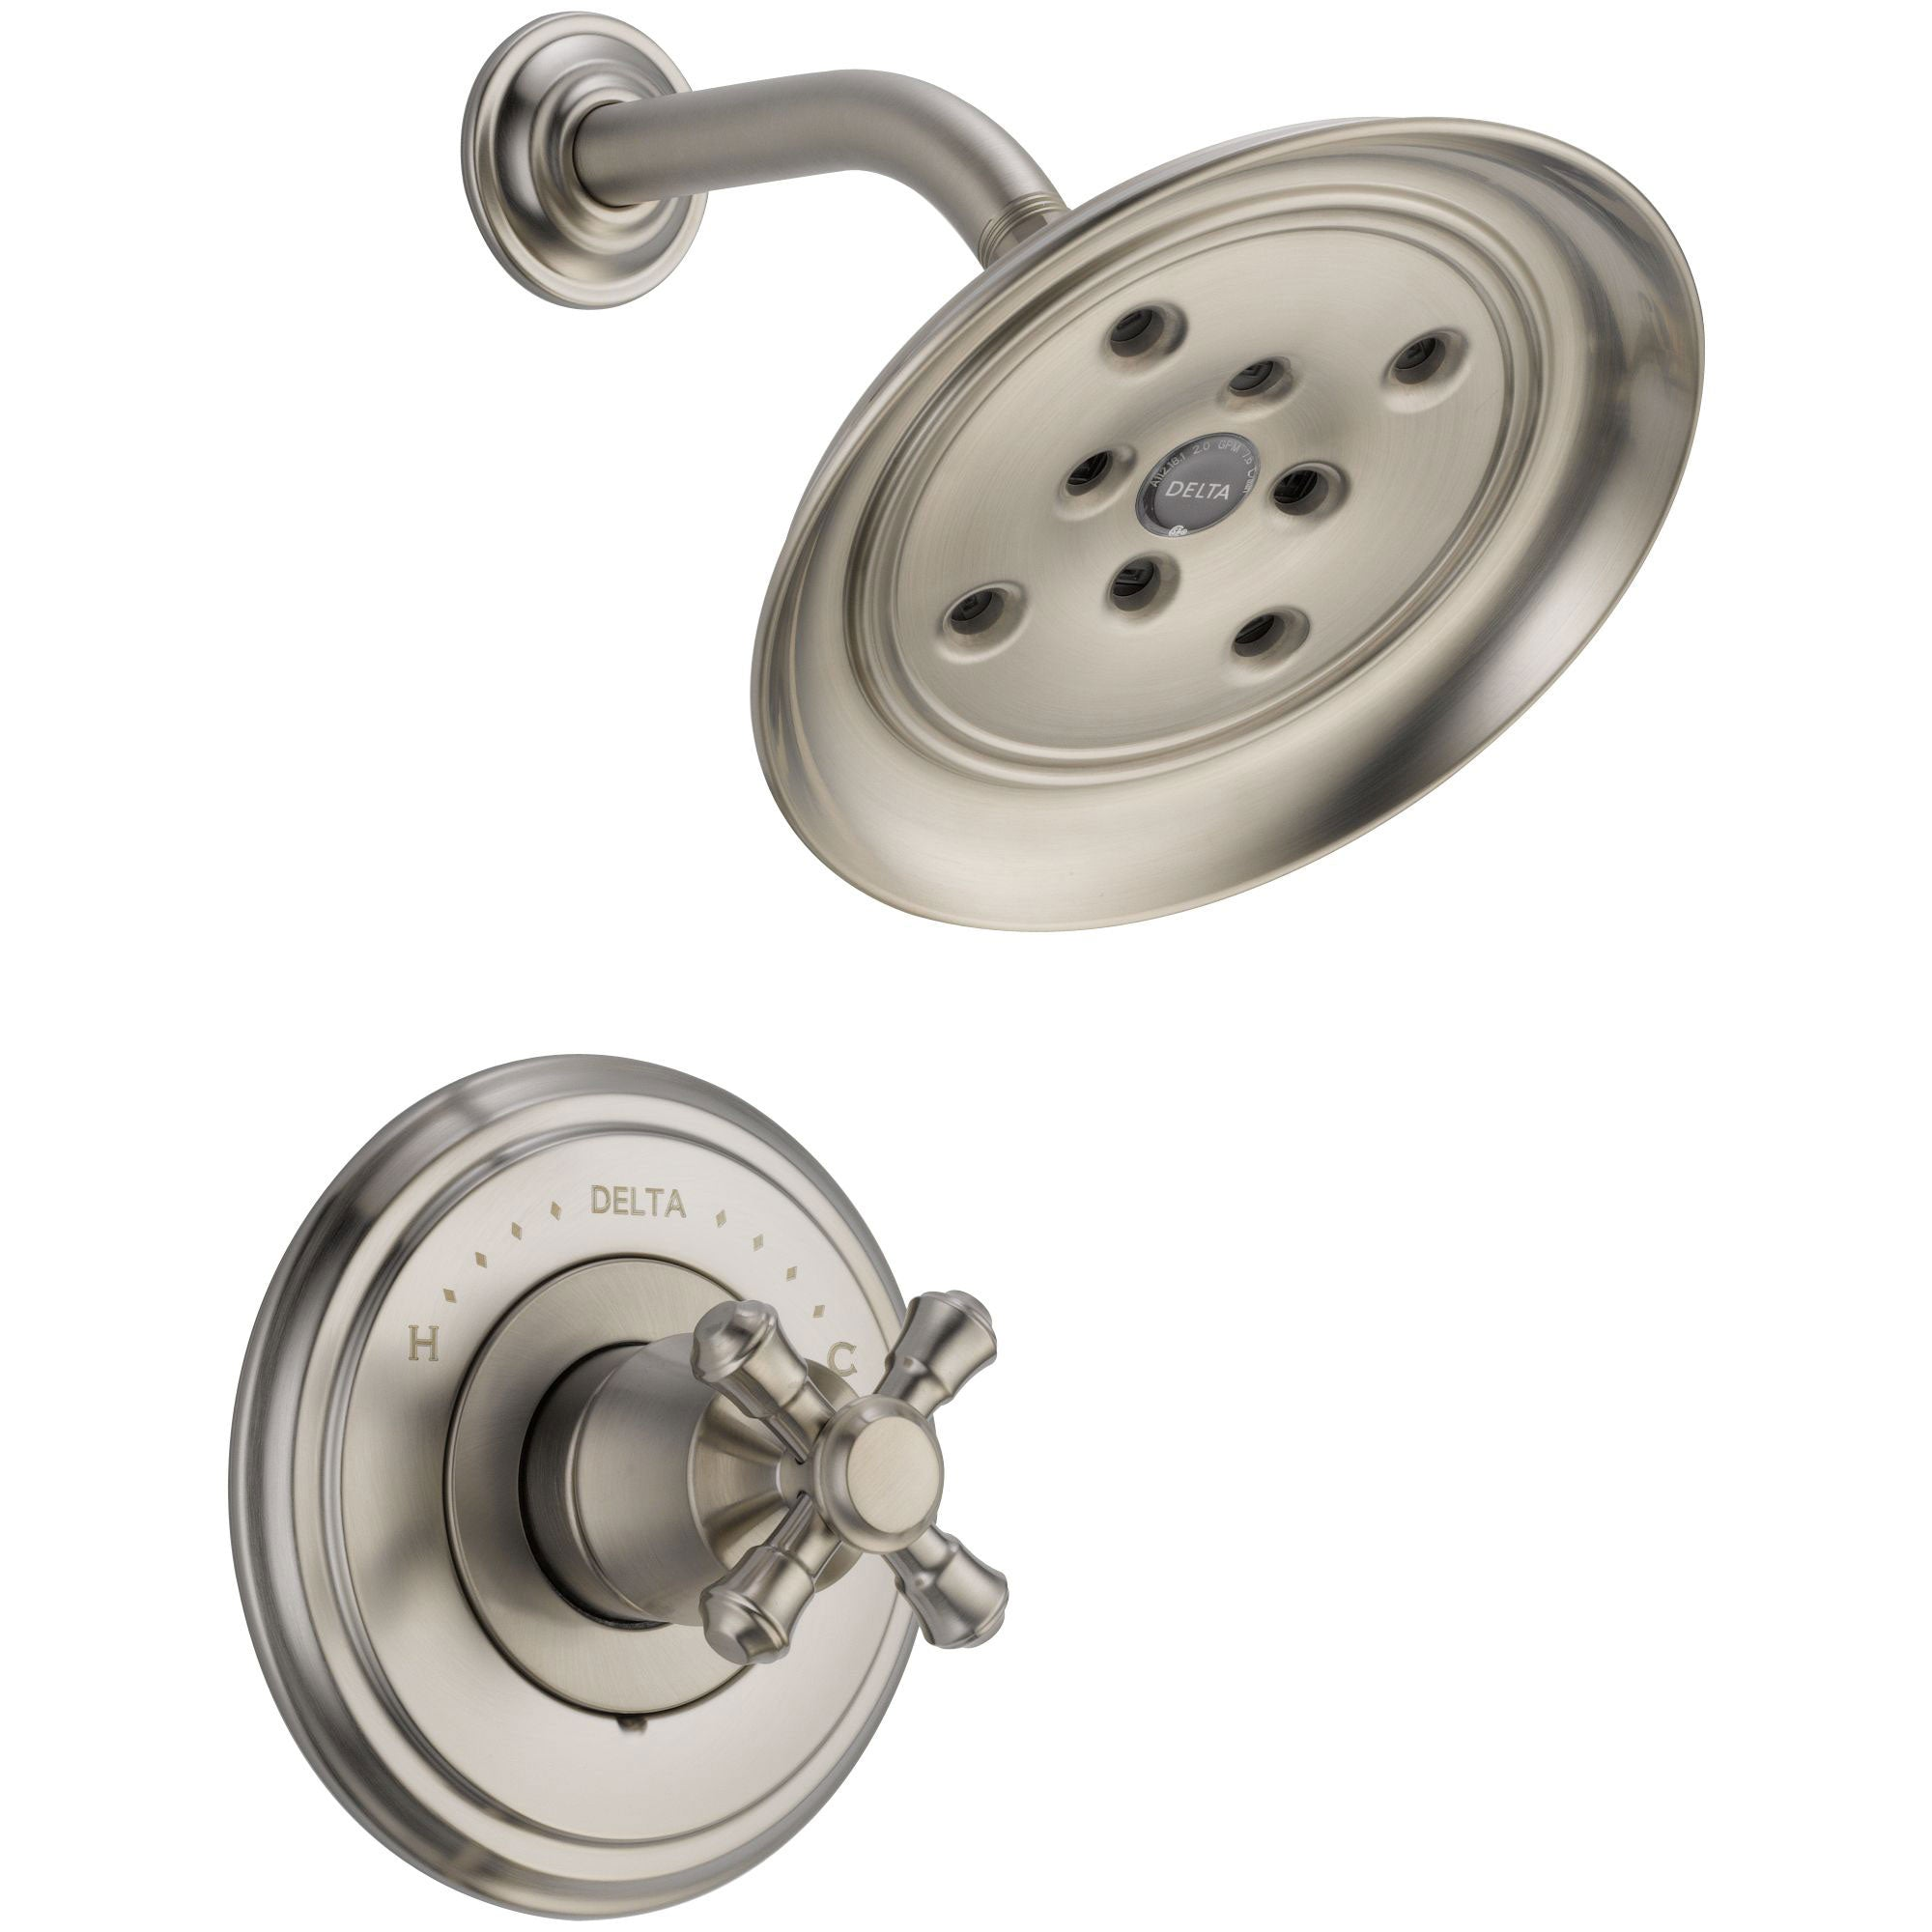 Delta Cassidy Stainless Steel Finish 14 Series Shower Only Faucet INCLUDES Rough-in Valve with Stops and Single Cross Handle D1221V